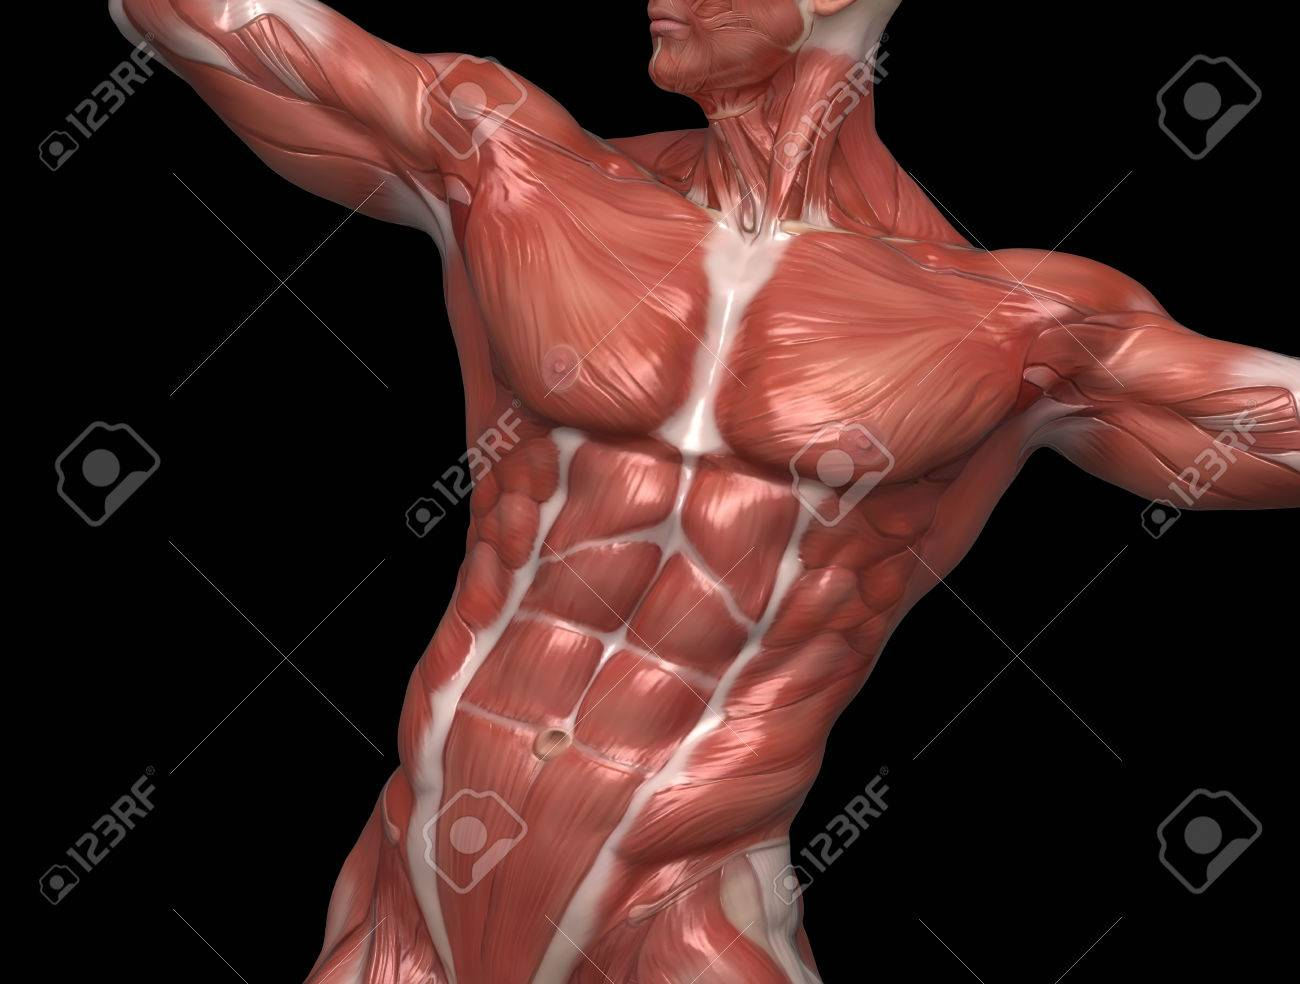 Man Muscular Anatomy In Bodybuilder Pose Stock Photo Picture And